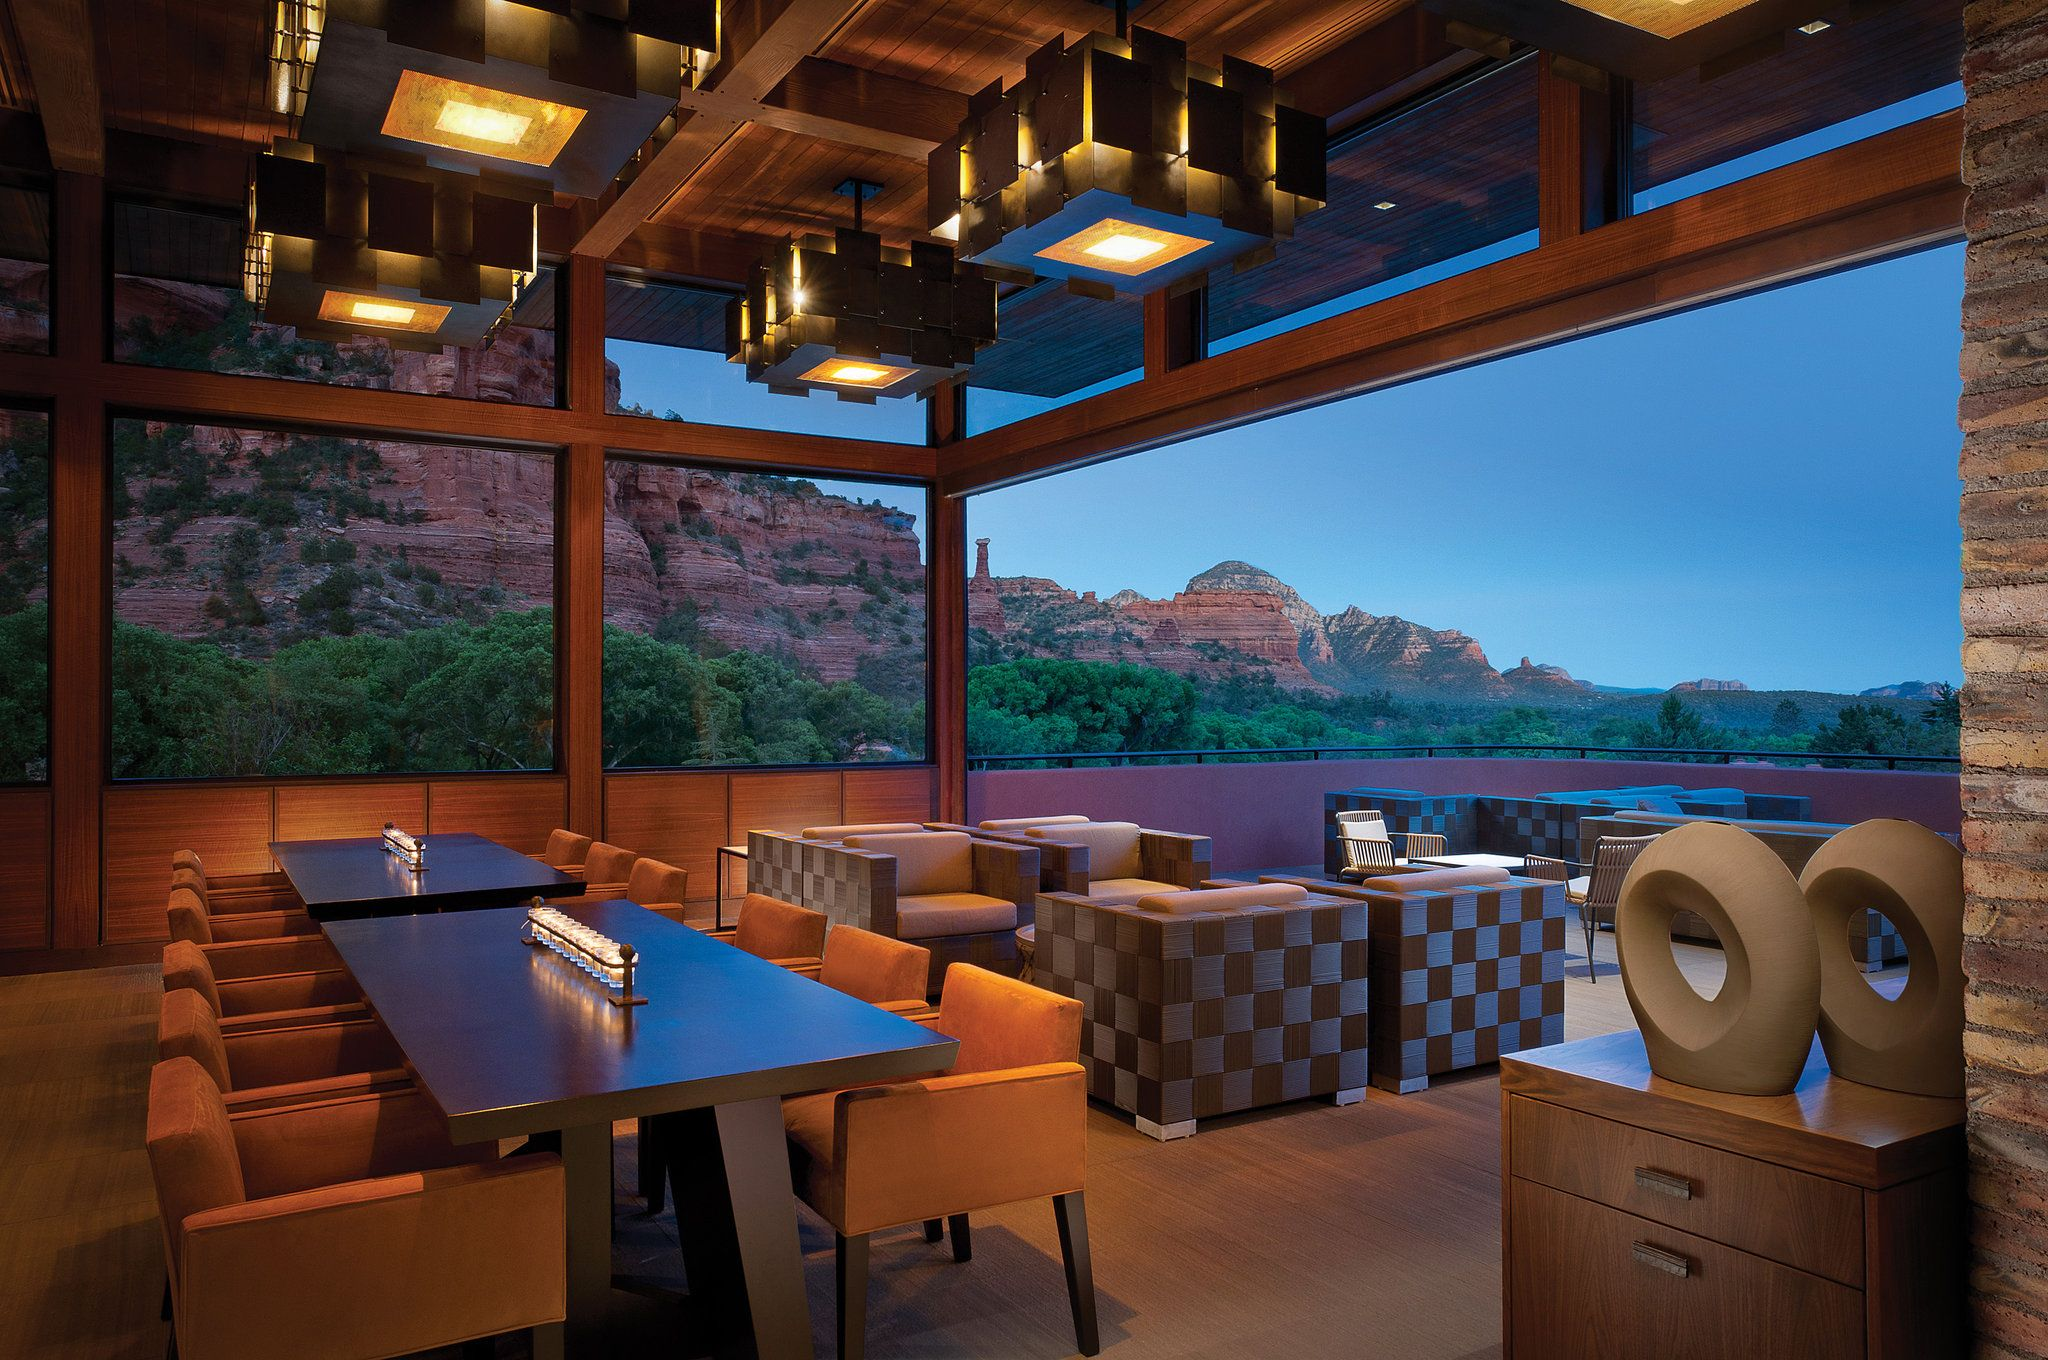 ENCHANTMENT RESORT Sedona, Arizona, United States